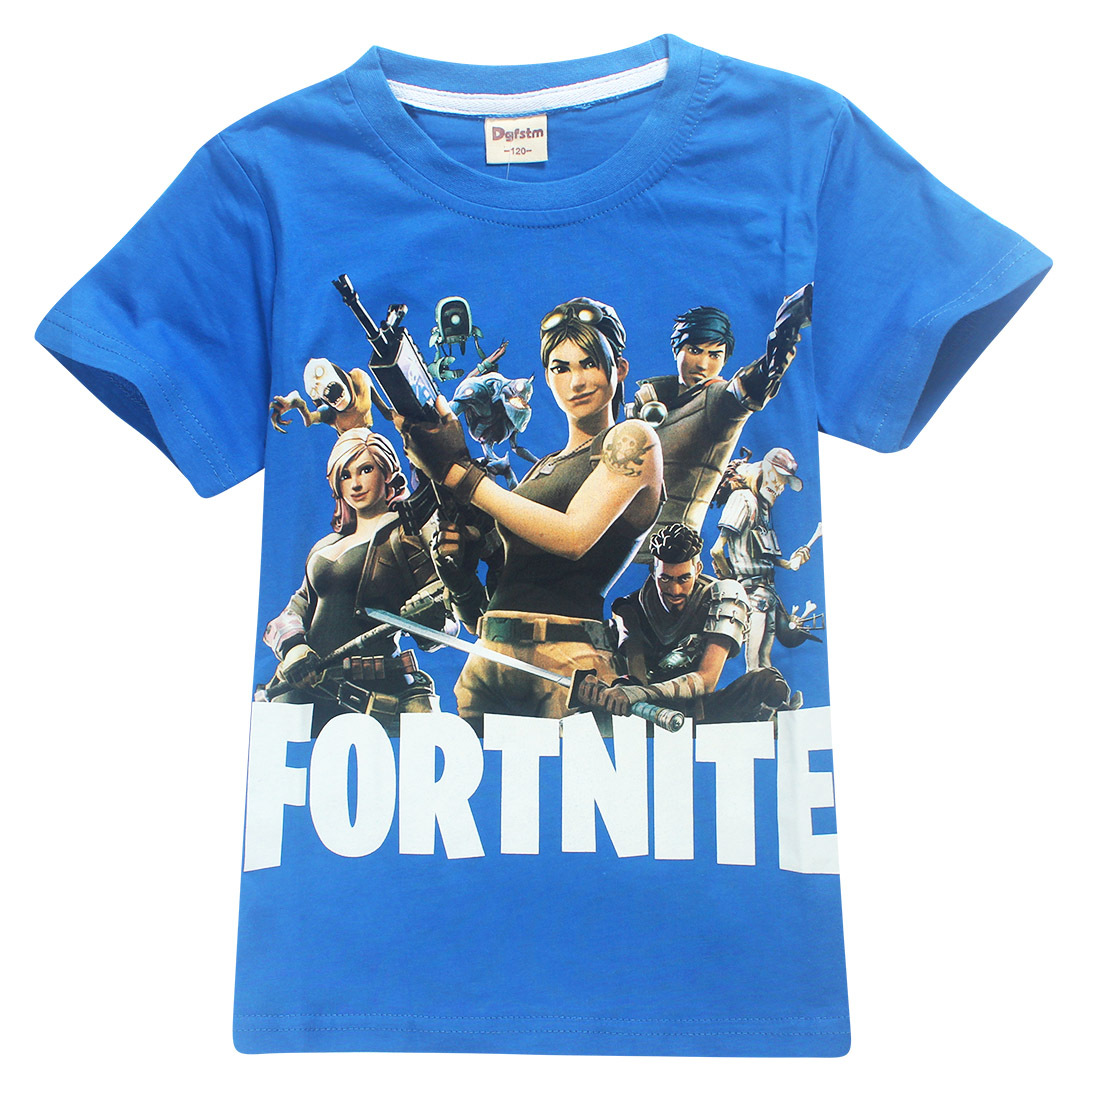 Hot Game Fortnite 3D Print Short Sleeve Teen Boys Girls T Shirt Pure Cotton Kids Casual T-shirts Tops Cartoon Childrens Clothes